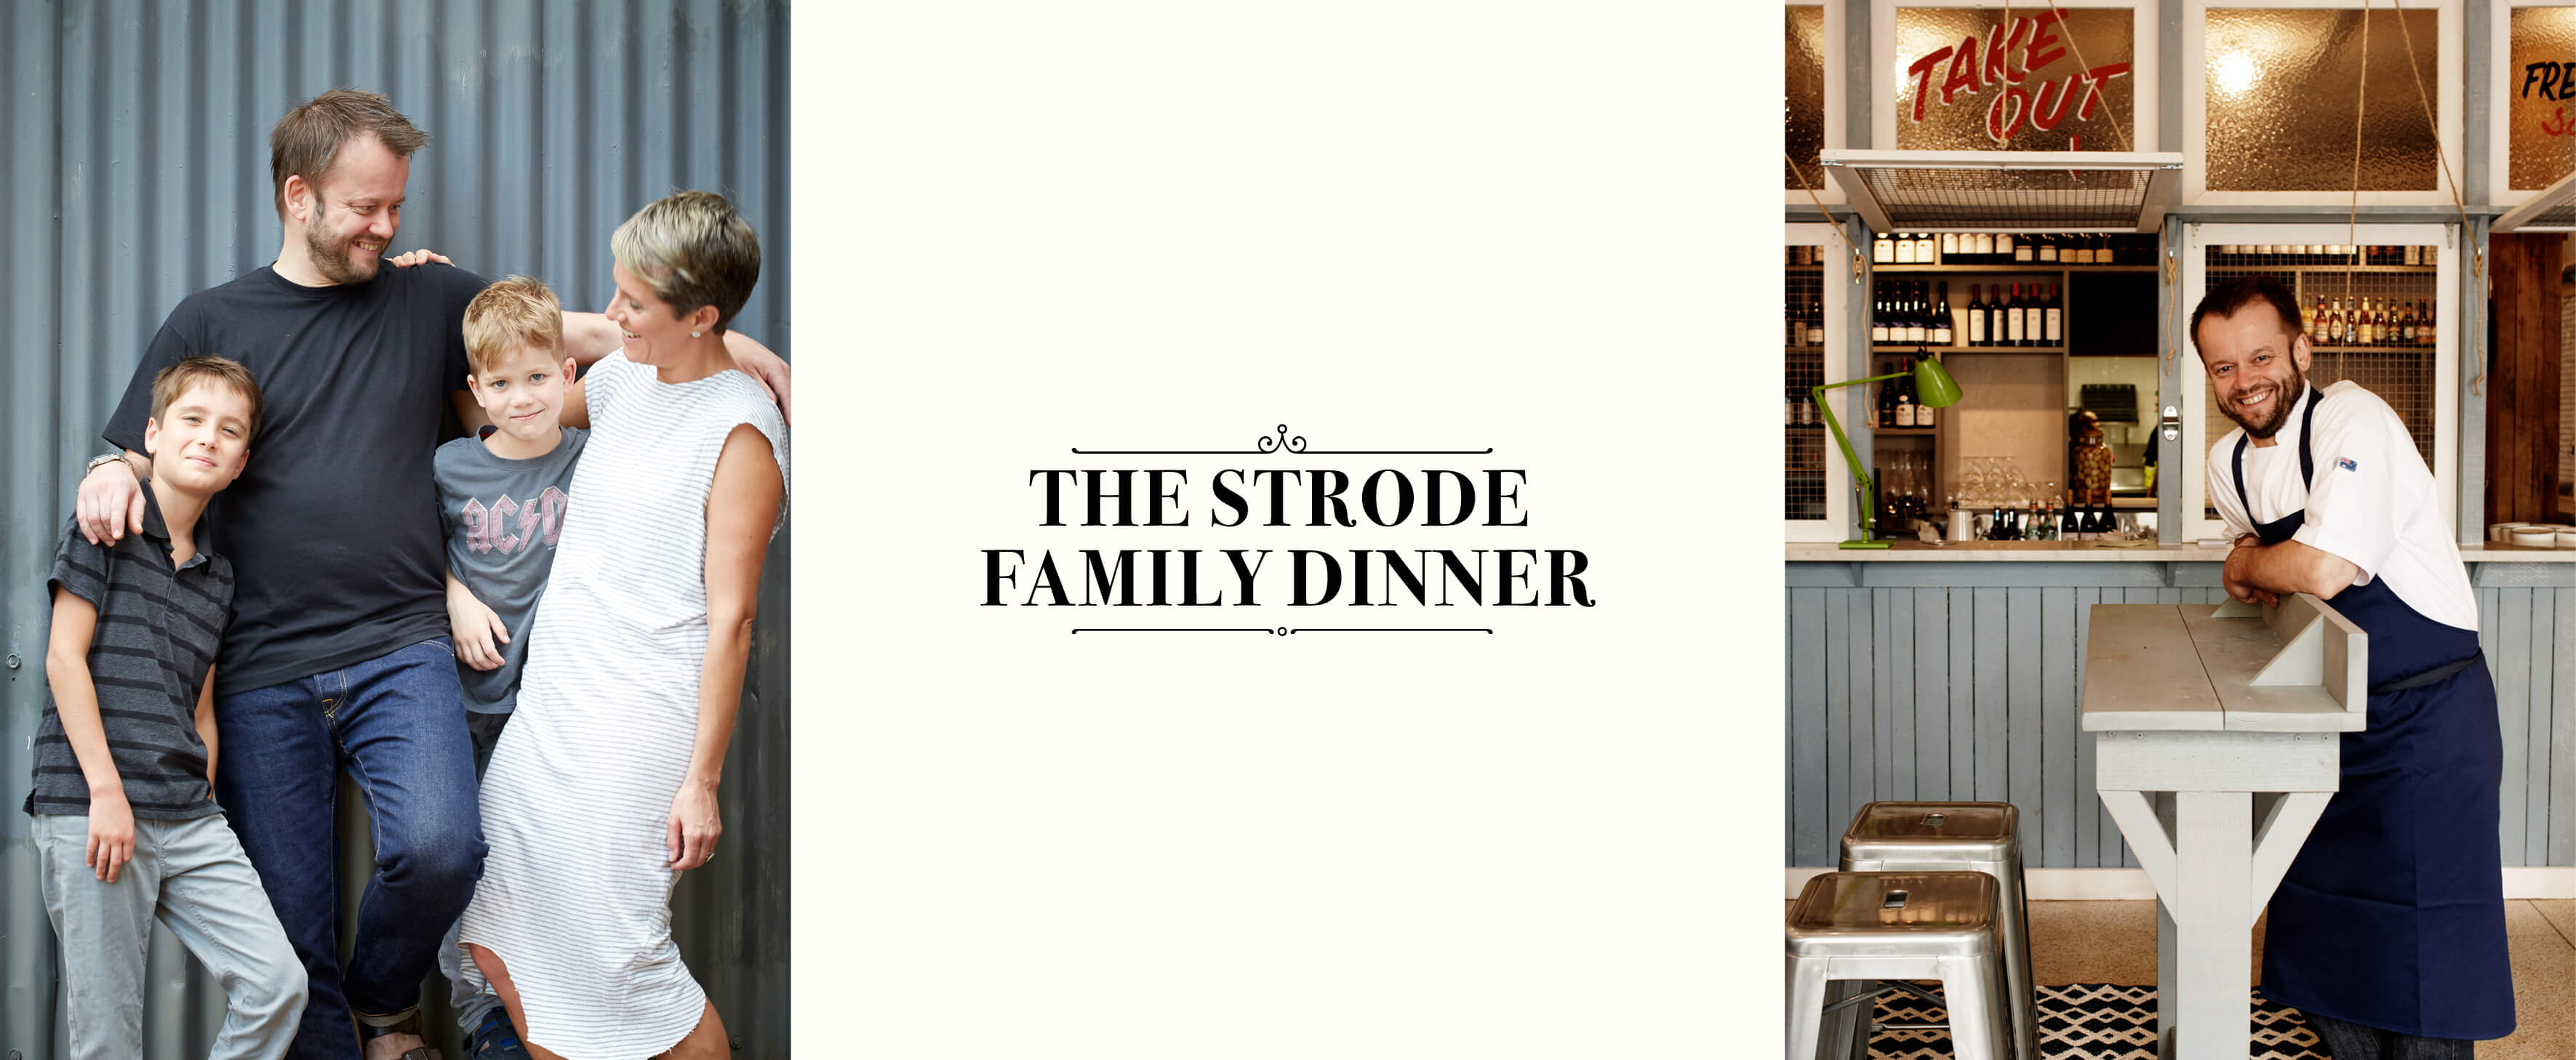 Tickets for The Strode Family Dinner in Sydney from Ticketbooth